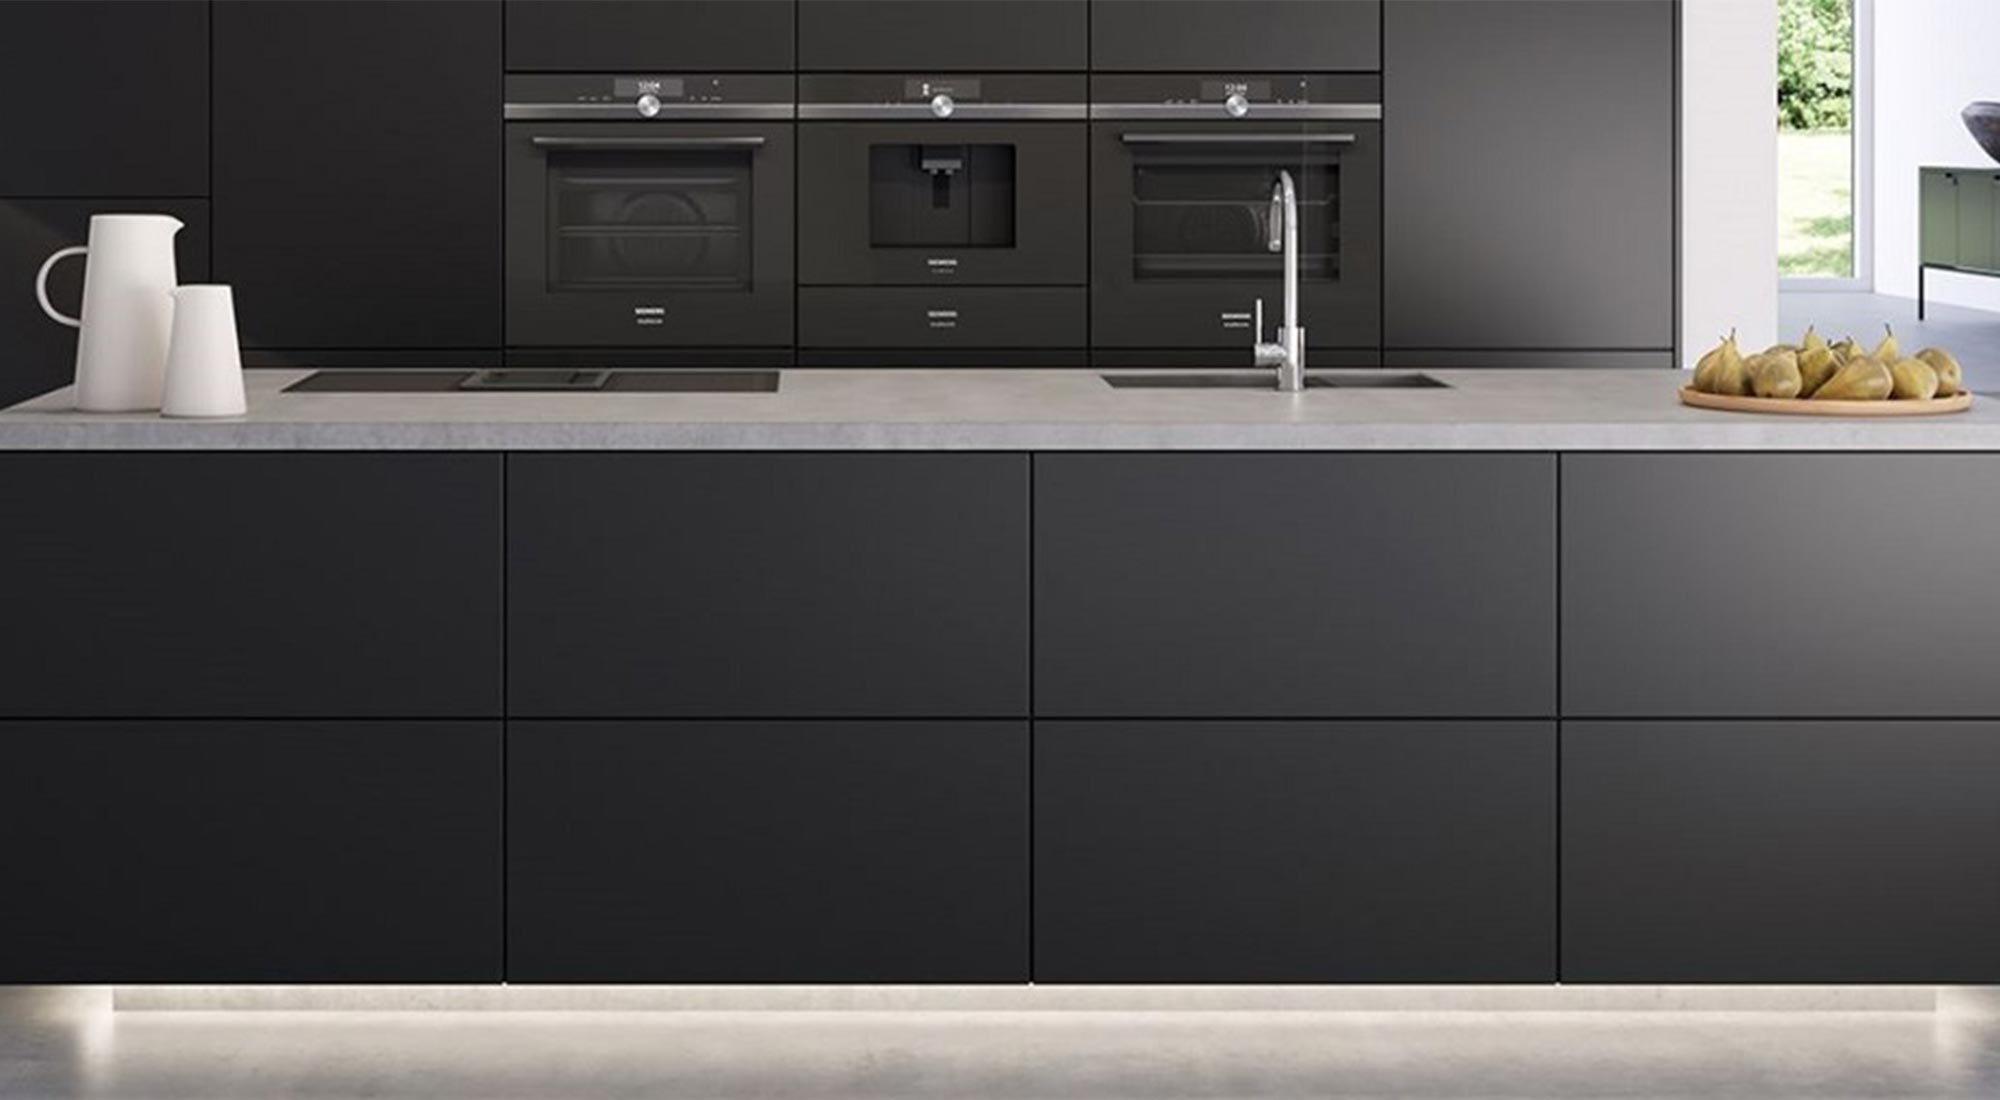 StudioLine kitchen design by Hubble